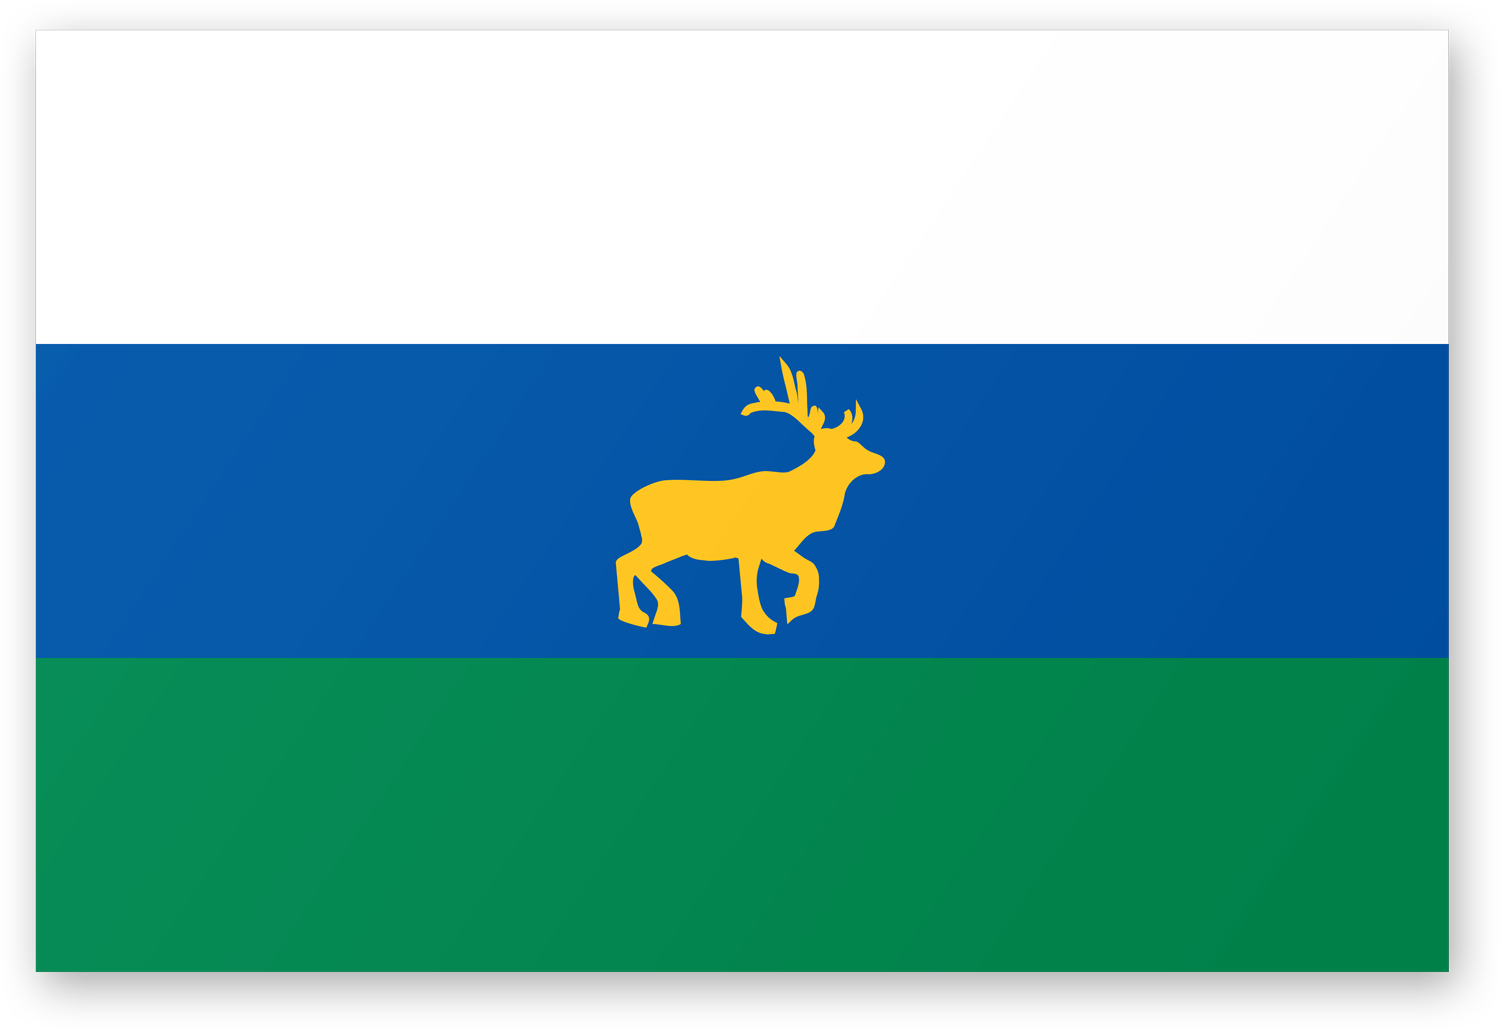 Redesign 101 The Flag Of Michigan